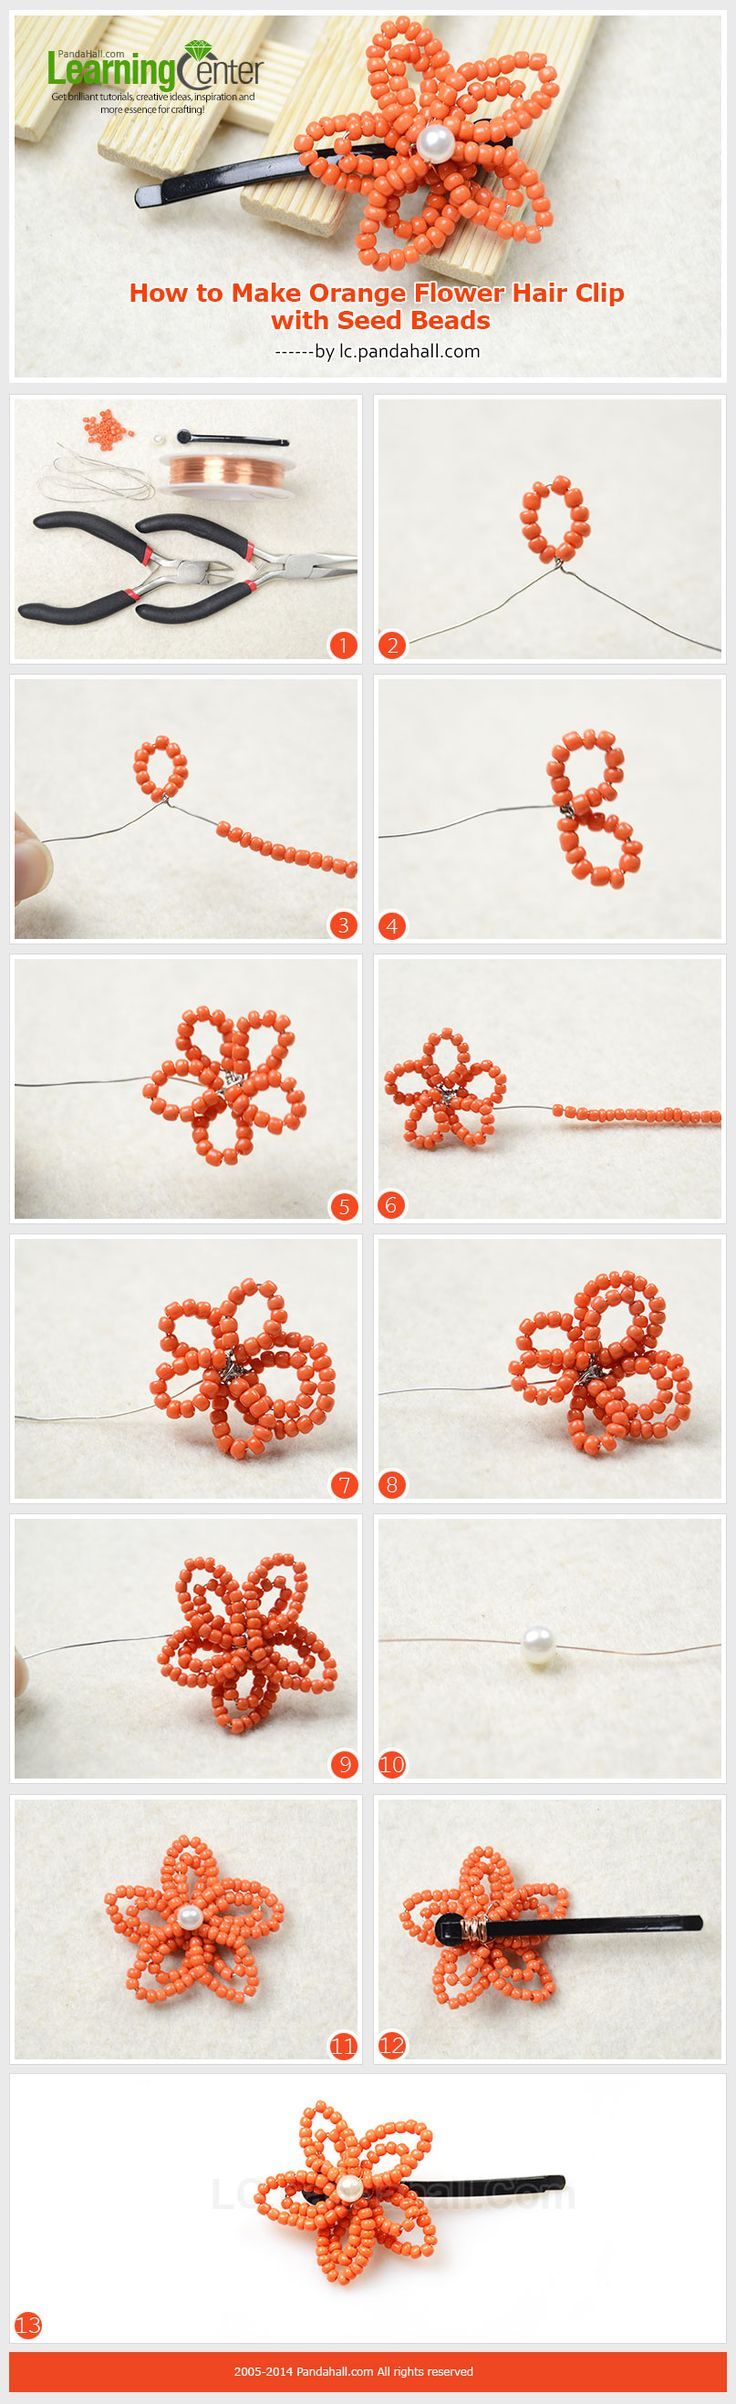 How to Make Orange Flower Hair Clip with Seed Beads